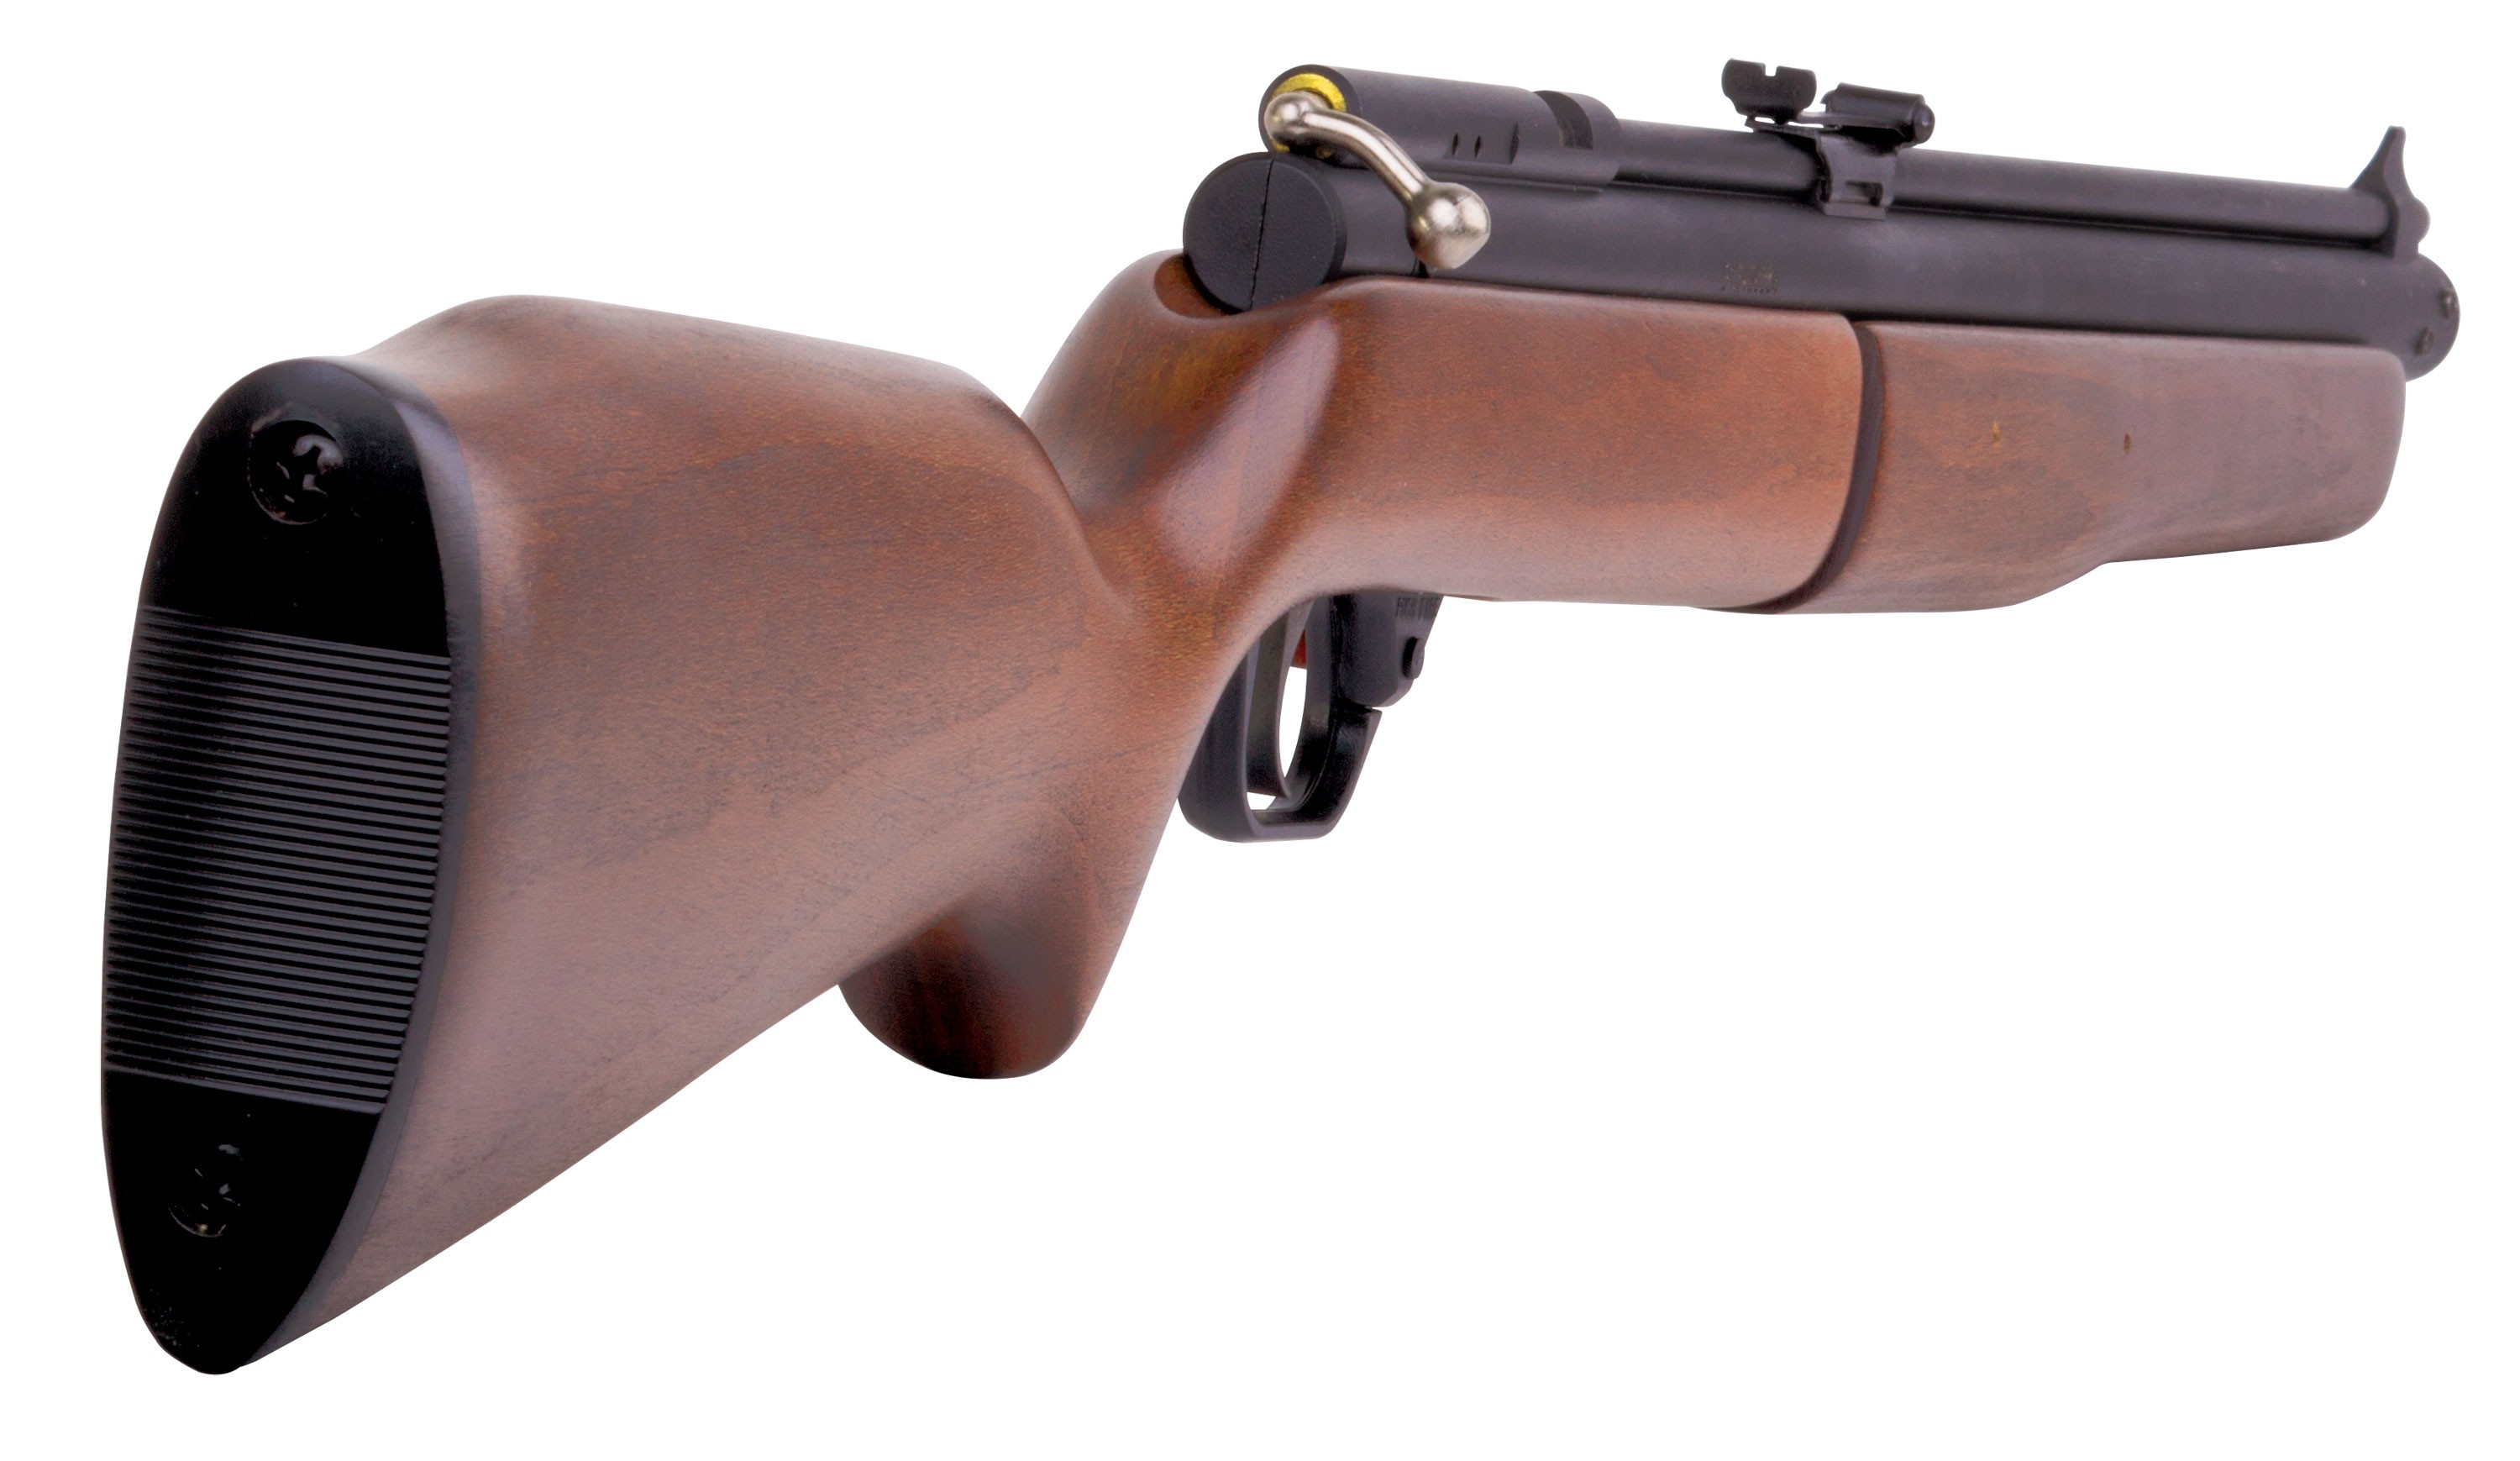 Honest Crosman Benjamin 392 air rifle Review - Air Gun Maniac